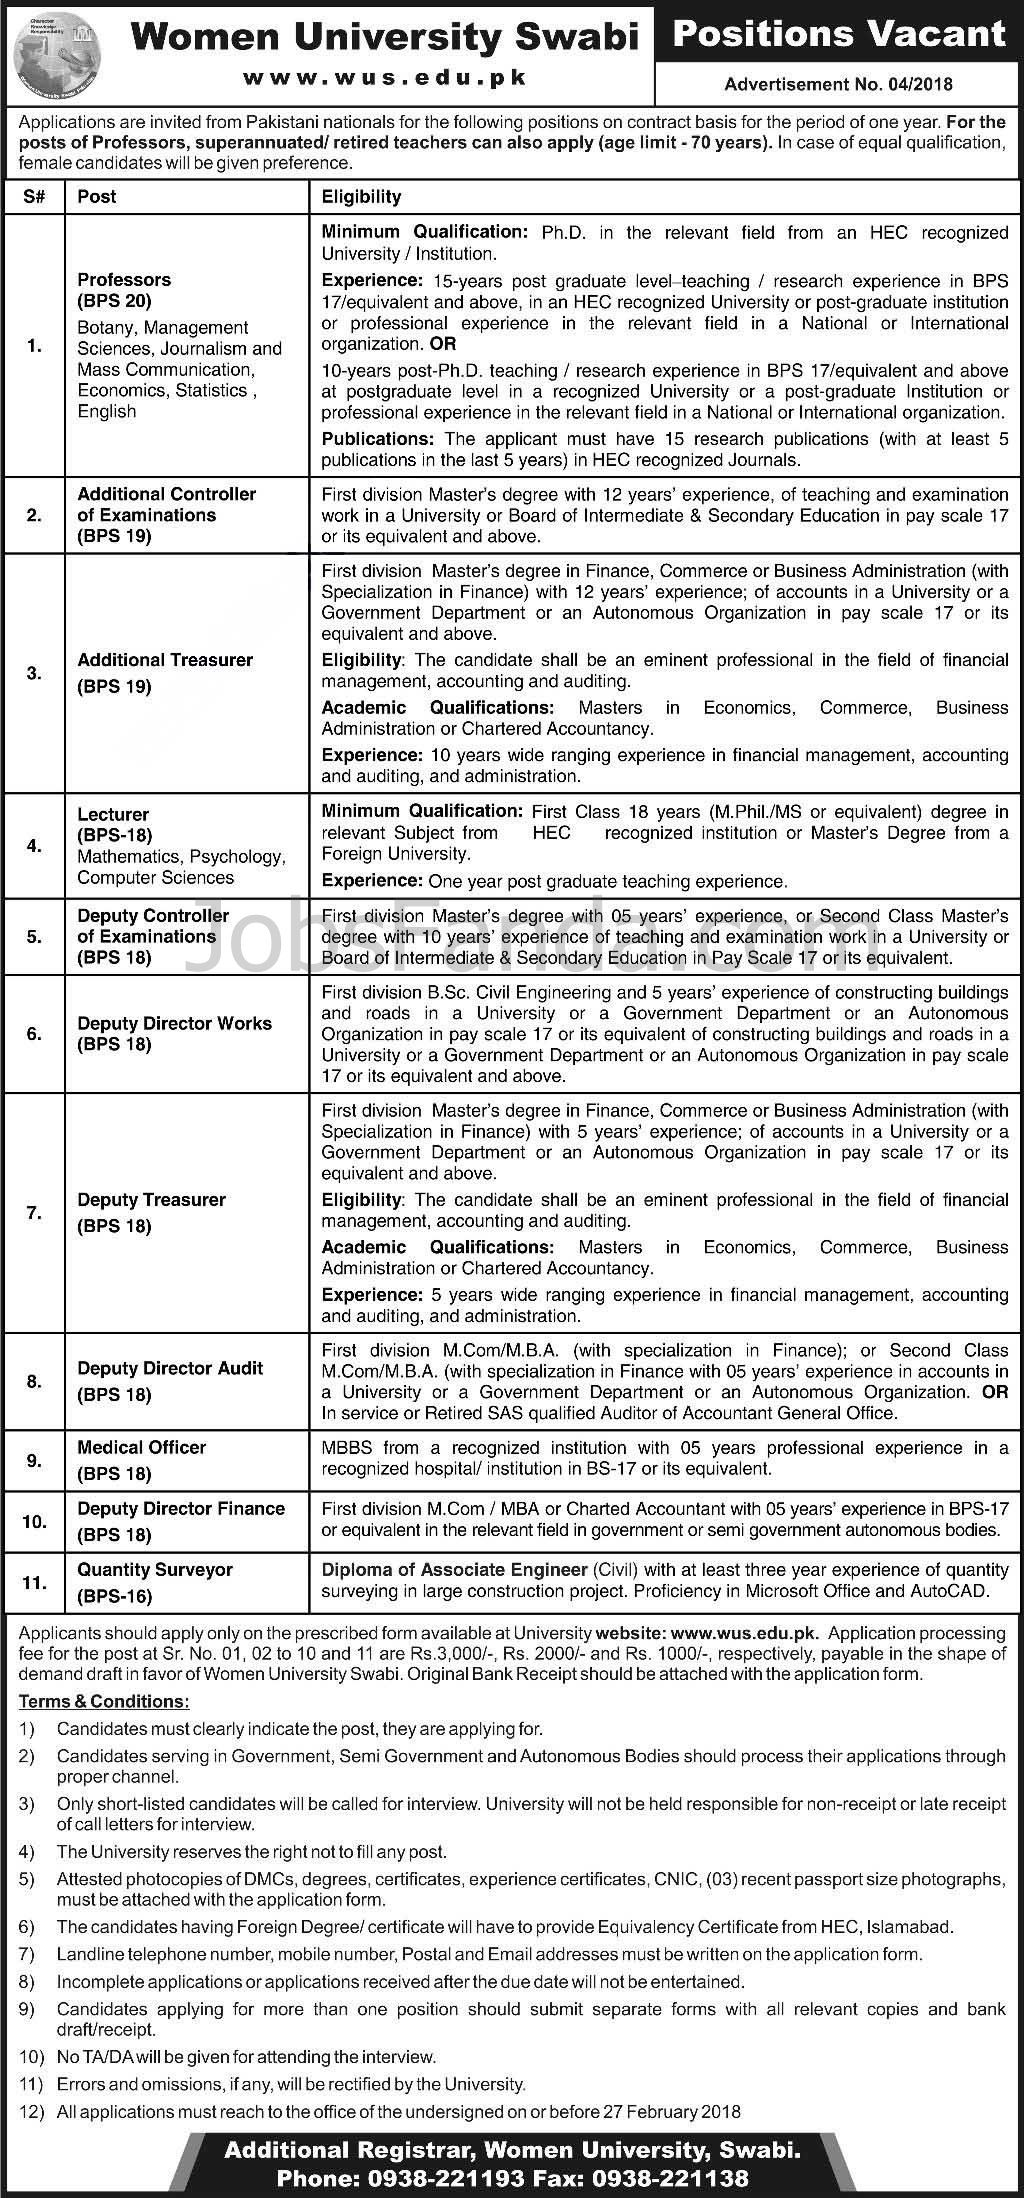 Women University Swabi Wus Jobs  Advertisement No  For